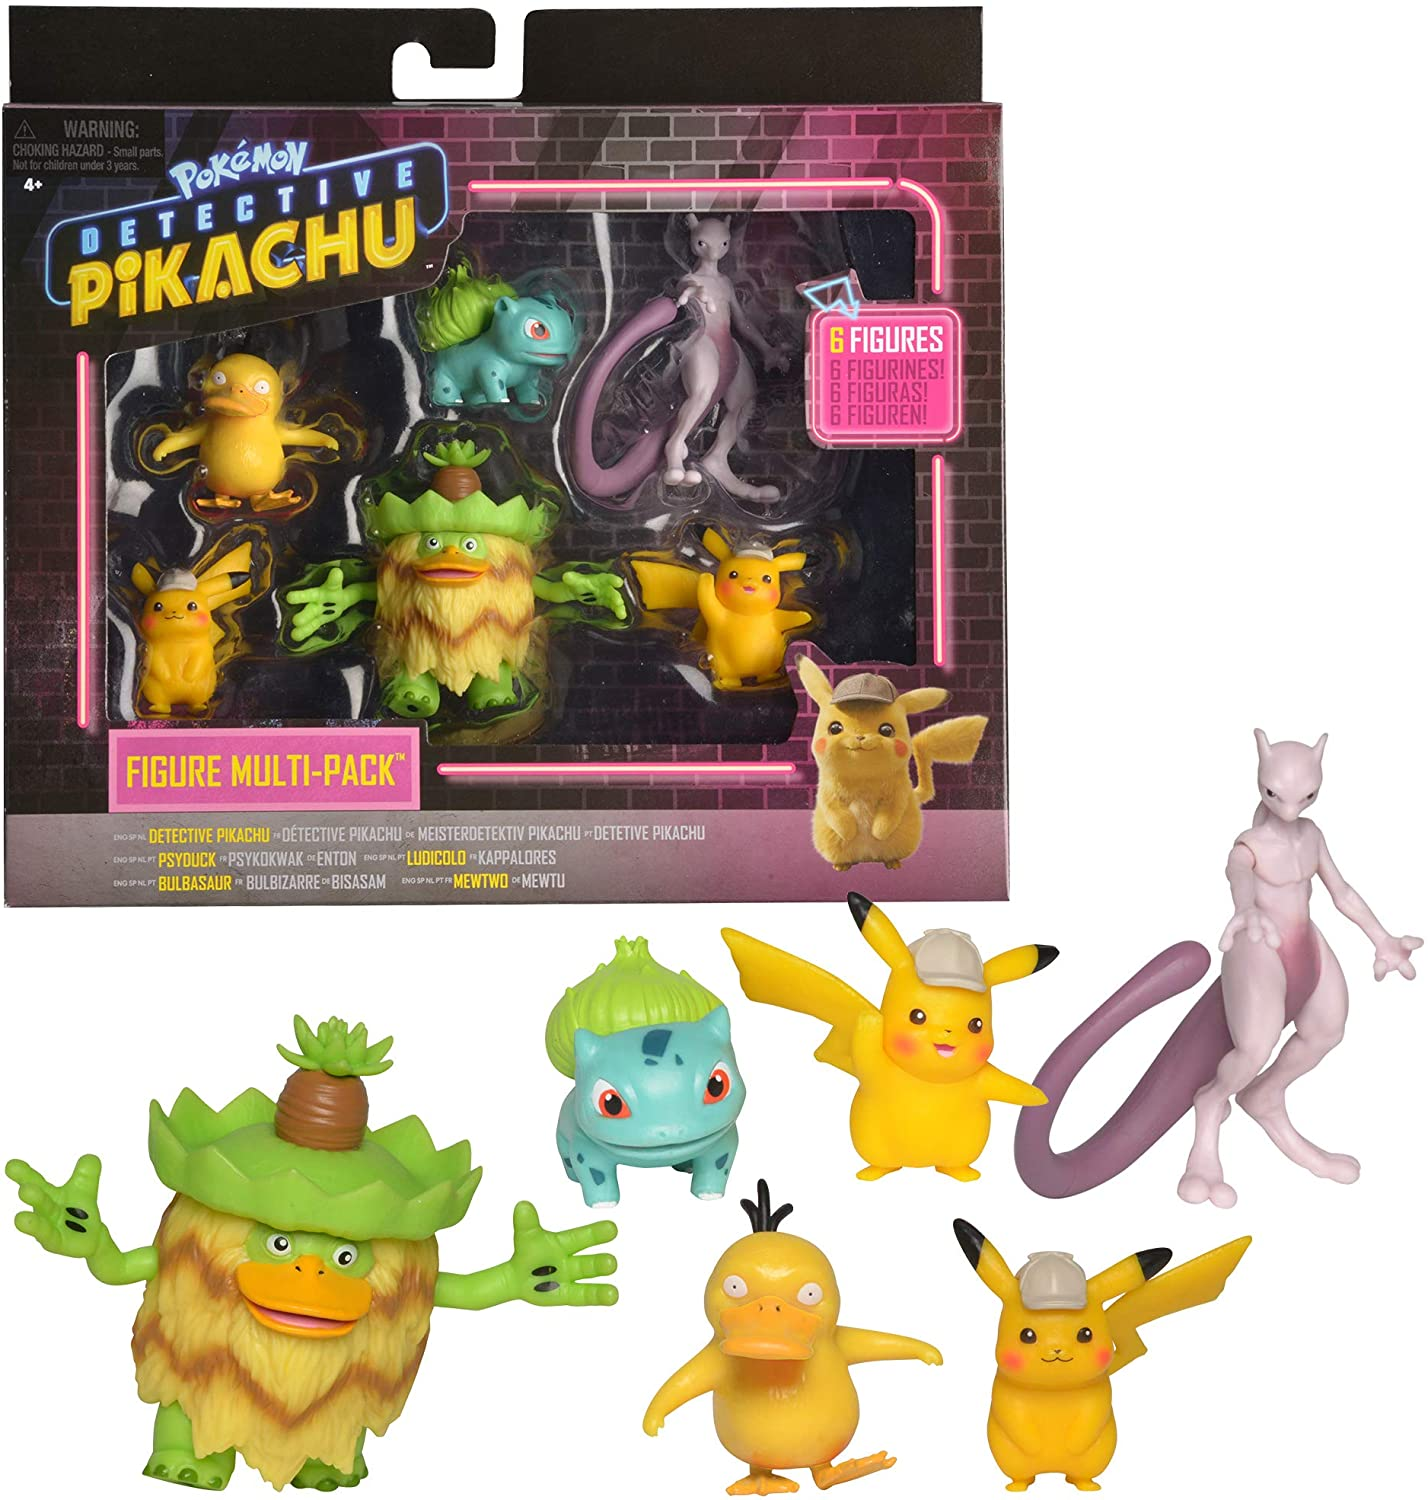 Amazon Com Pokemon Detective Pikachu Battle Figure 6pc Multi Pack Comes With Two 2 Pikachu 2 Psyduck 2 Bulbasaur 3 Mewtwo 3 Ludicolo Toys Games